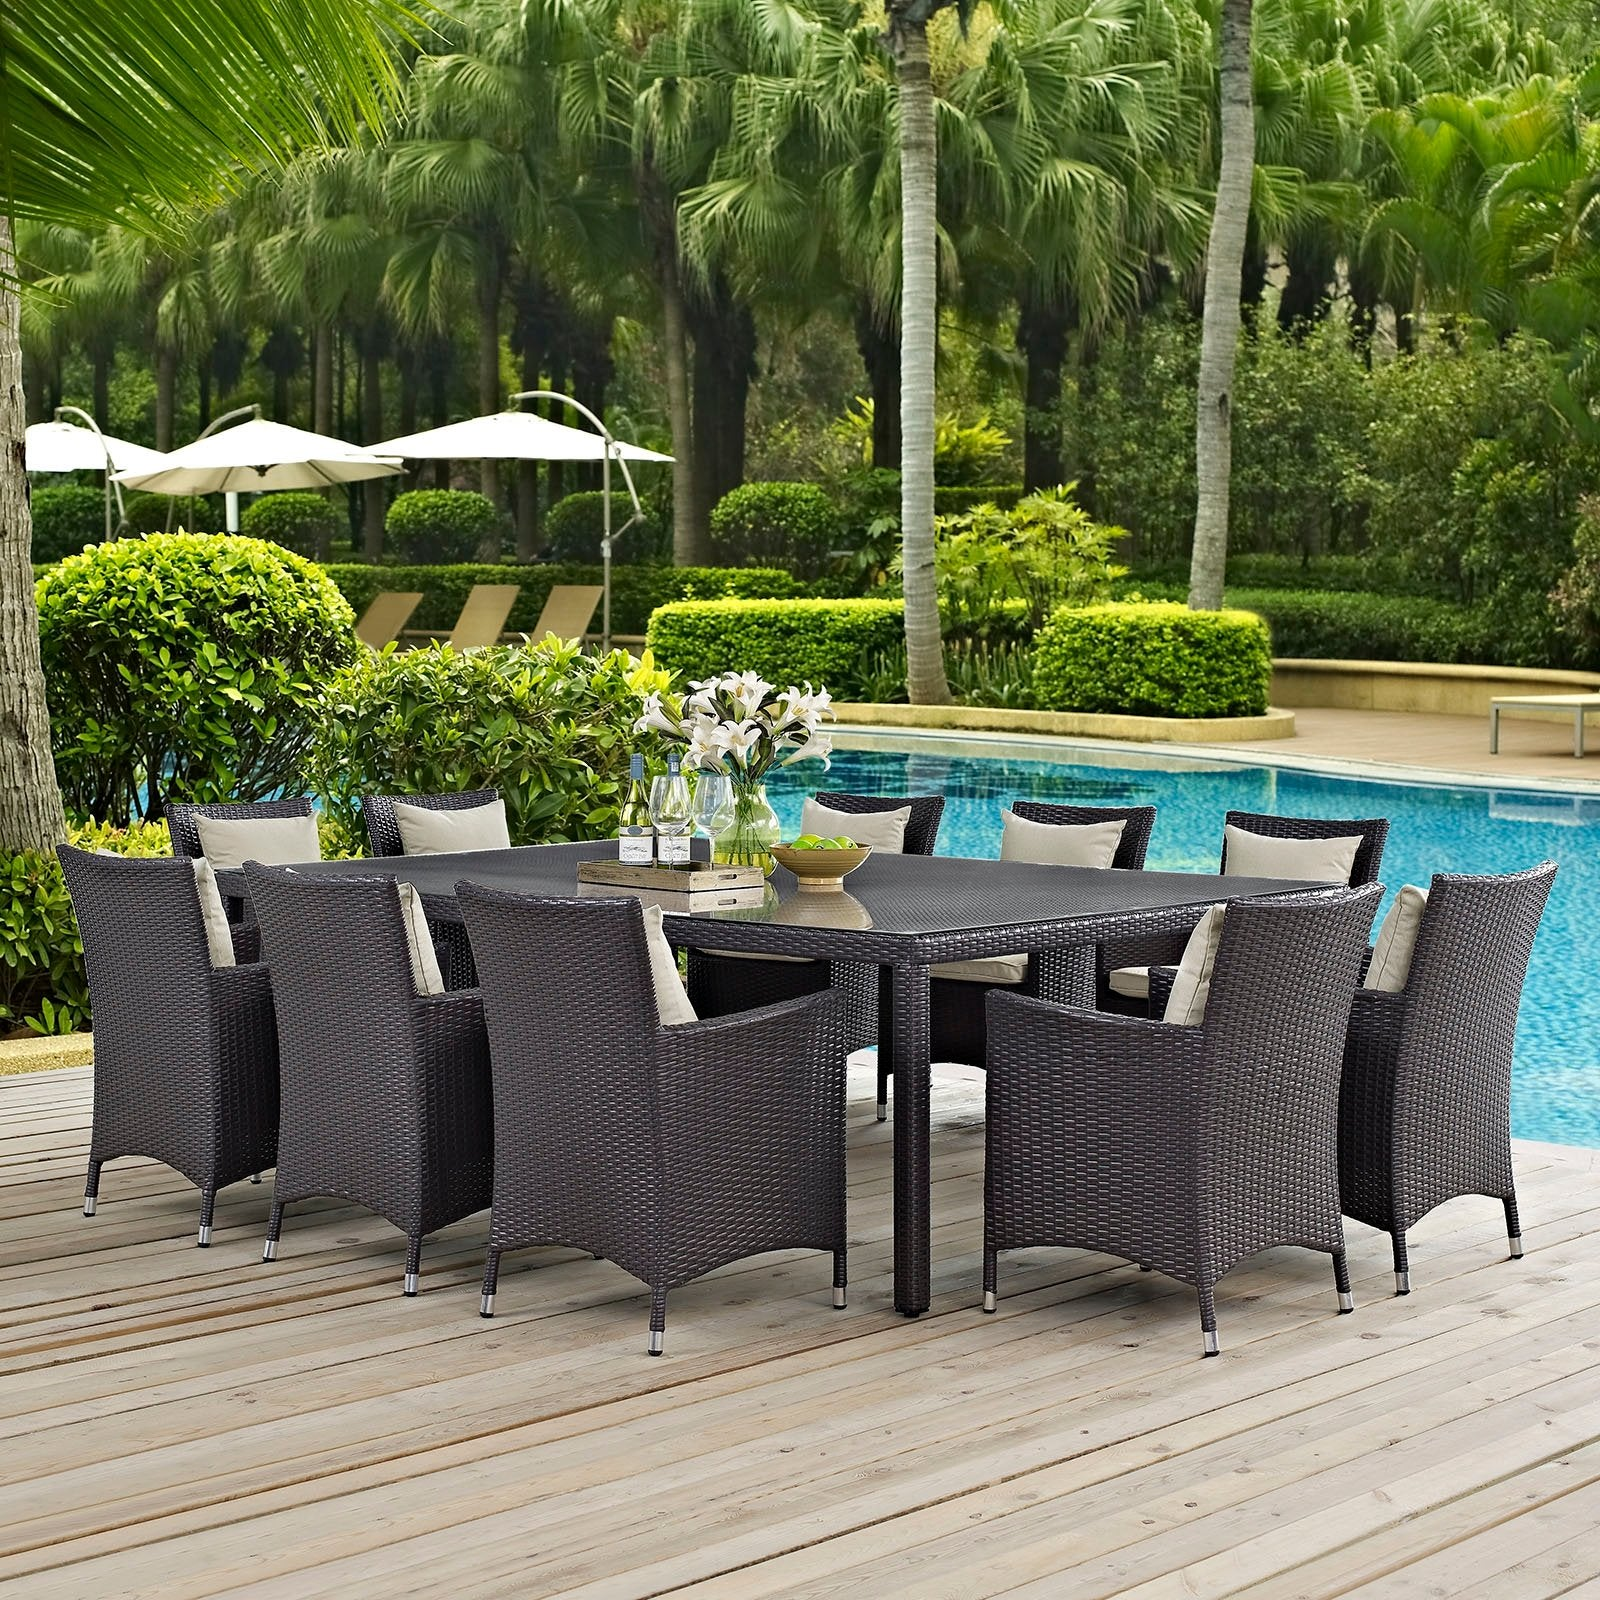 Aruba 11-Piece Outdoor Dining Set